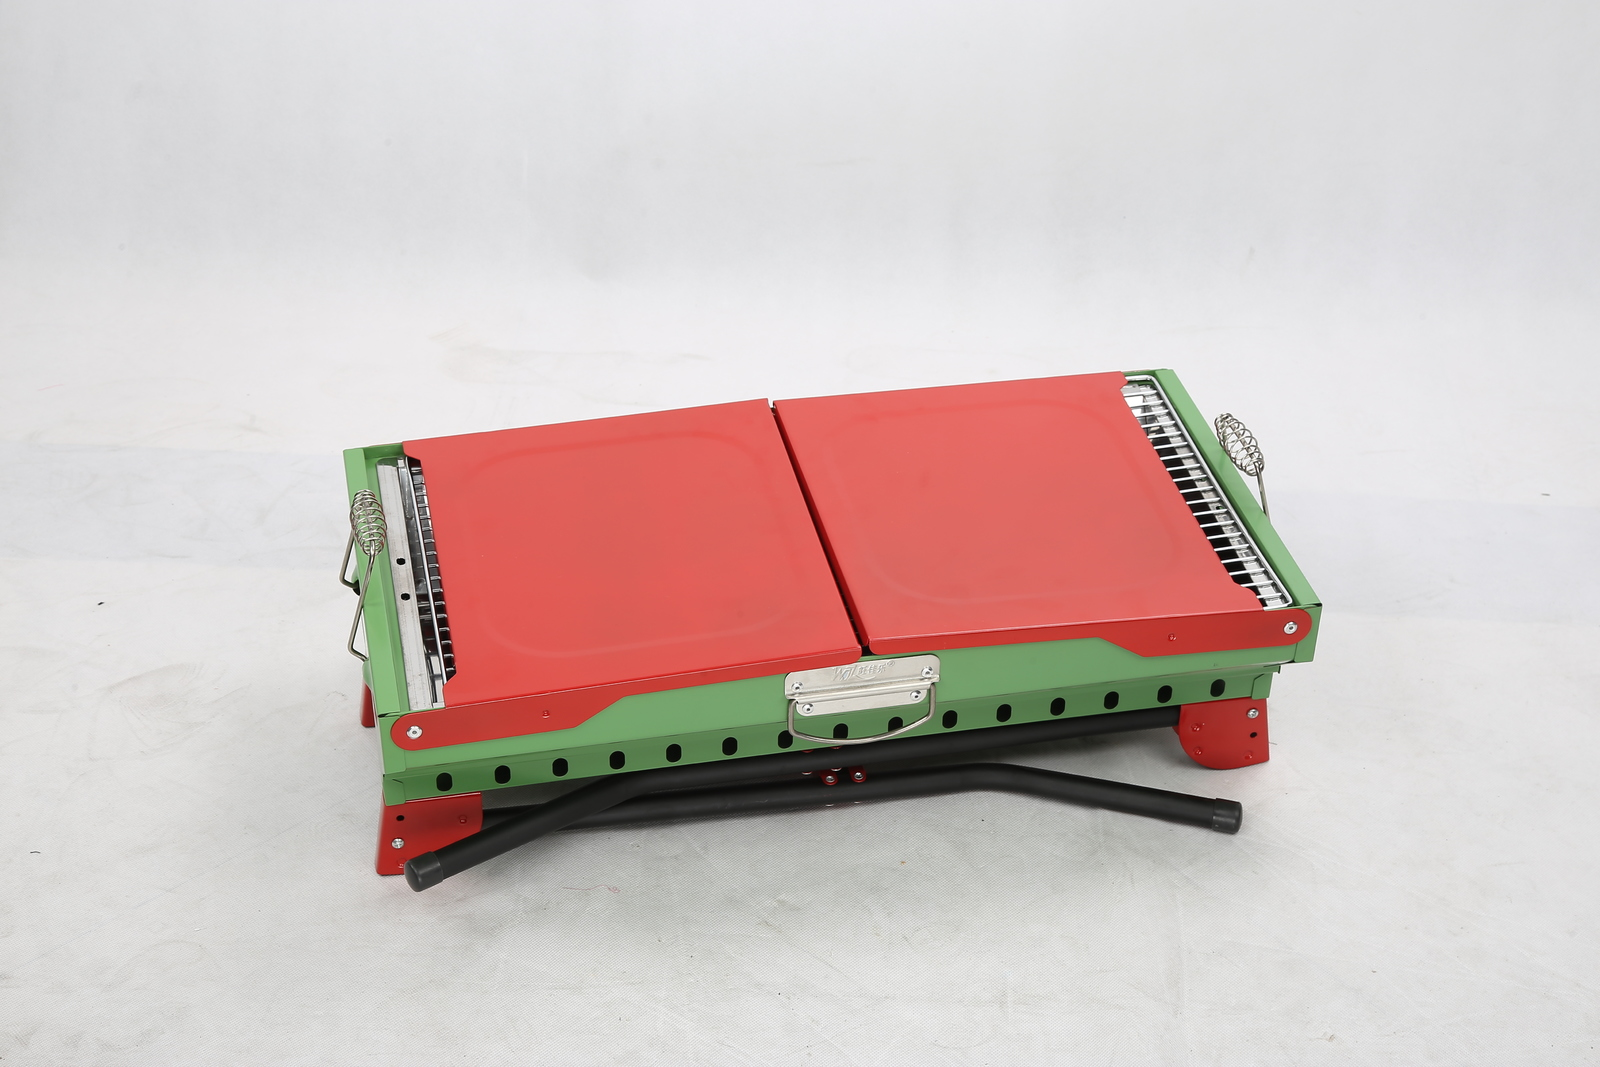 Portable Charcoal BBQ Grill (Red/Green) image